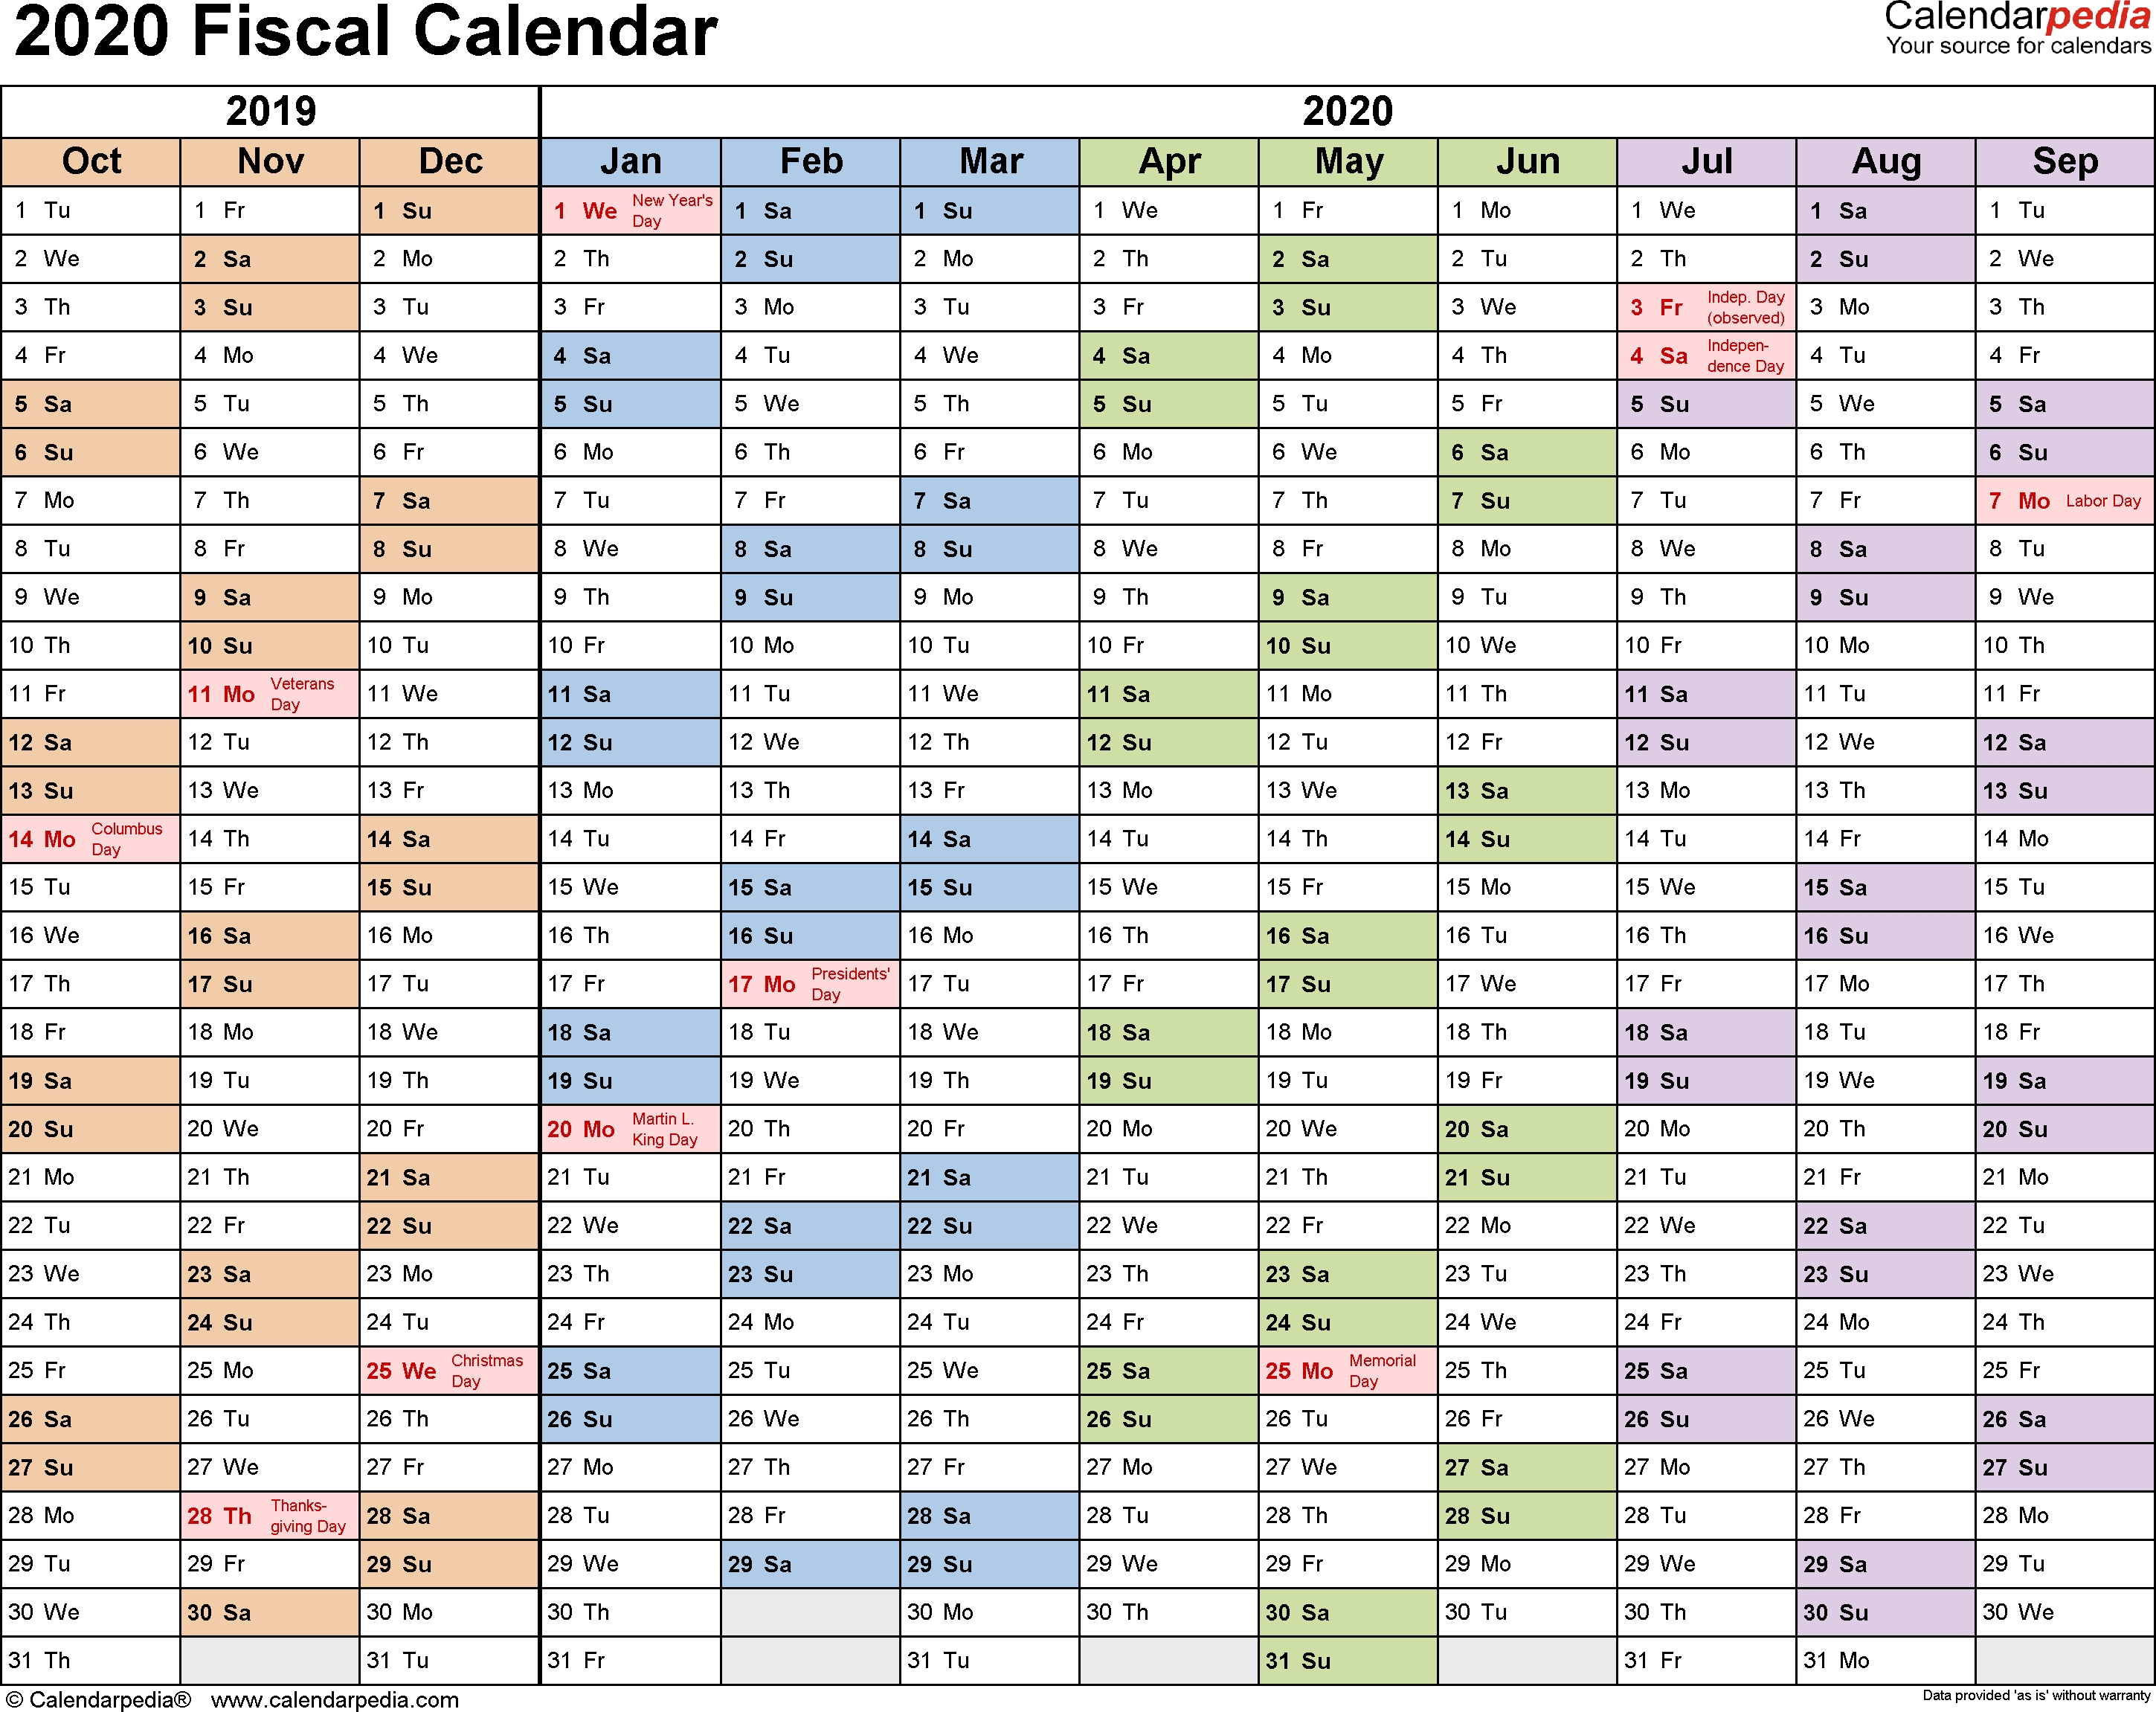 Fiscal Calendars 2020 As Free Printable Word Templates pertaining to 2020 Quarterly Calendar Printable Free